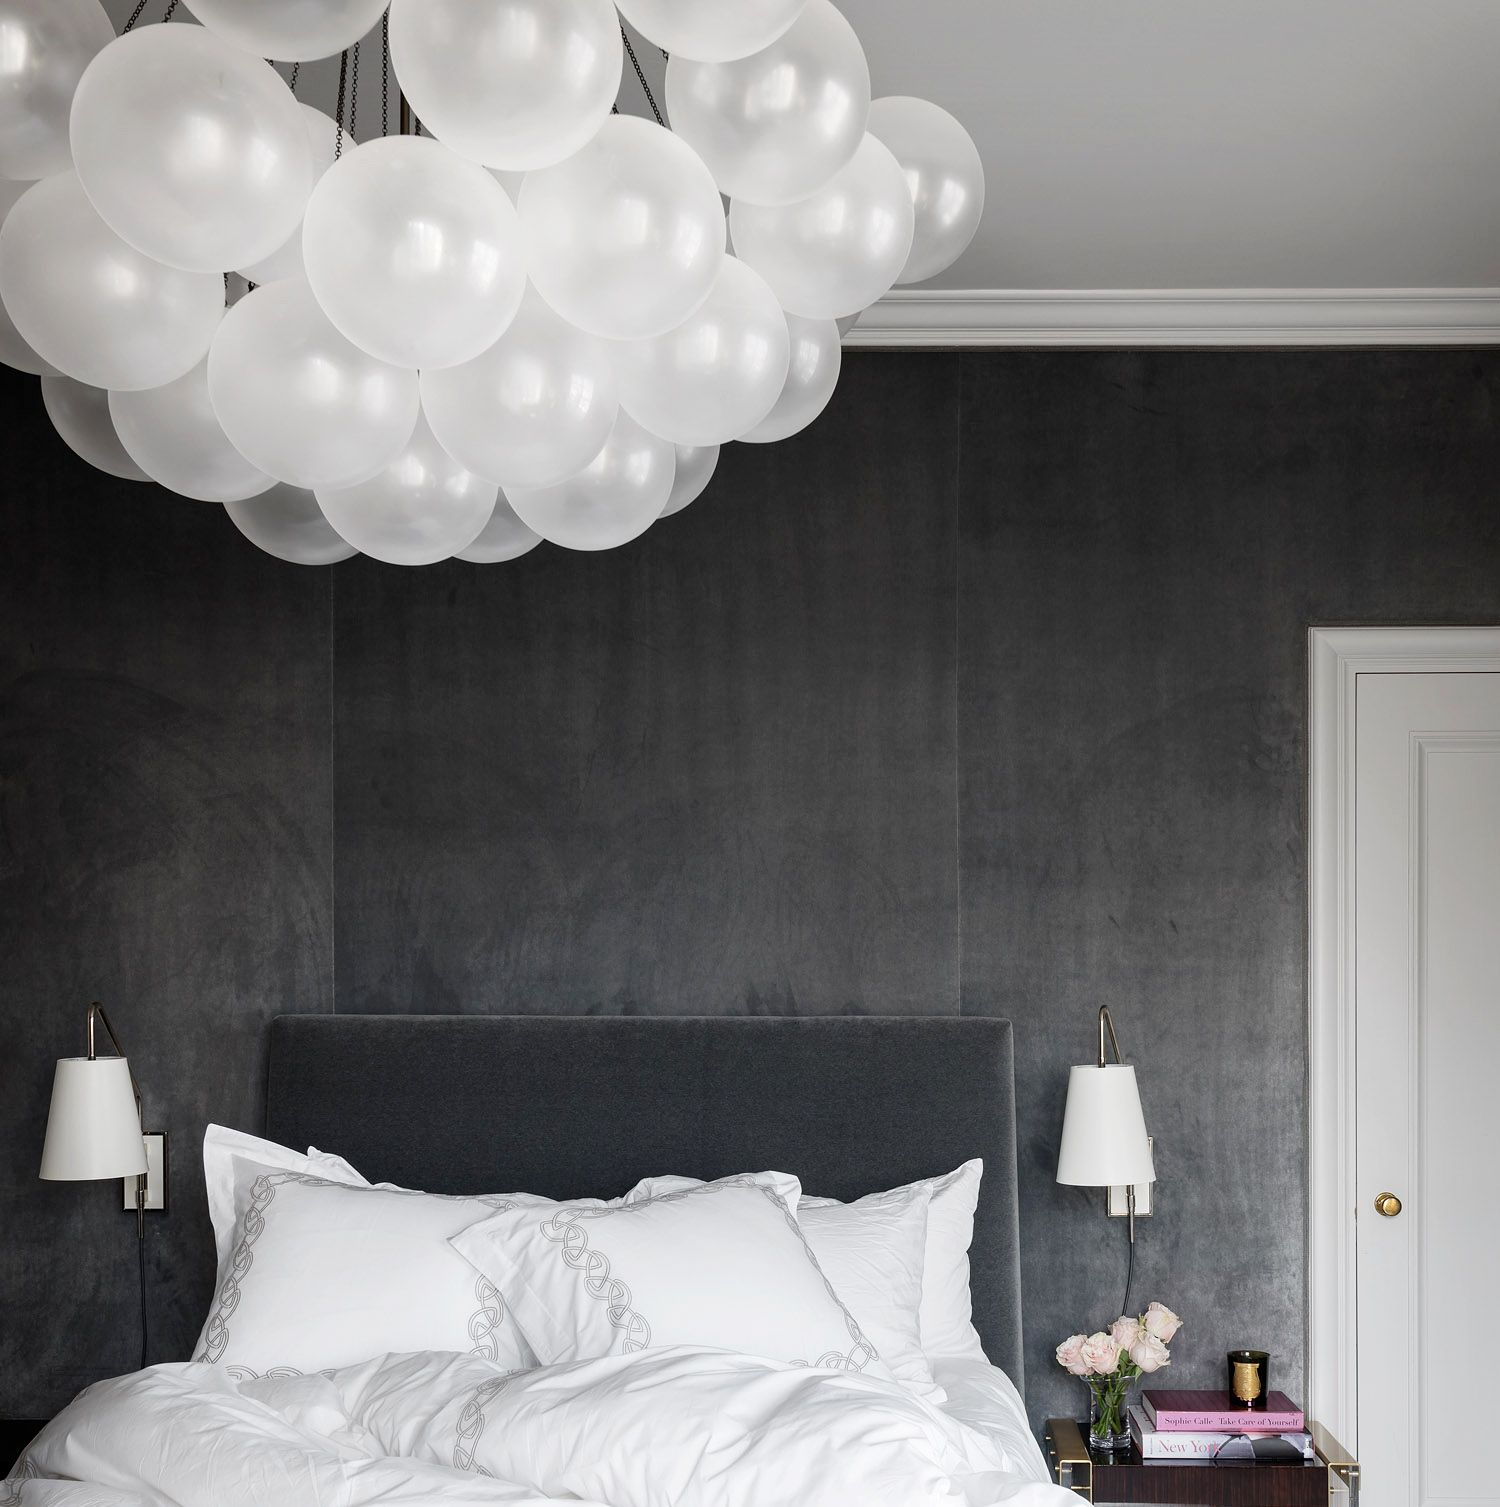 22 Romantic Bedroom Ideas – Sexy Bedroom Style Tips and Decor